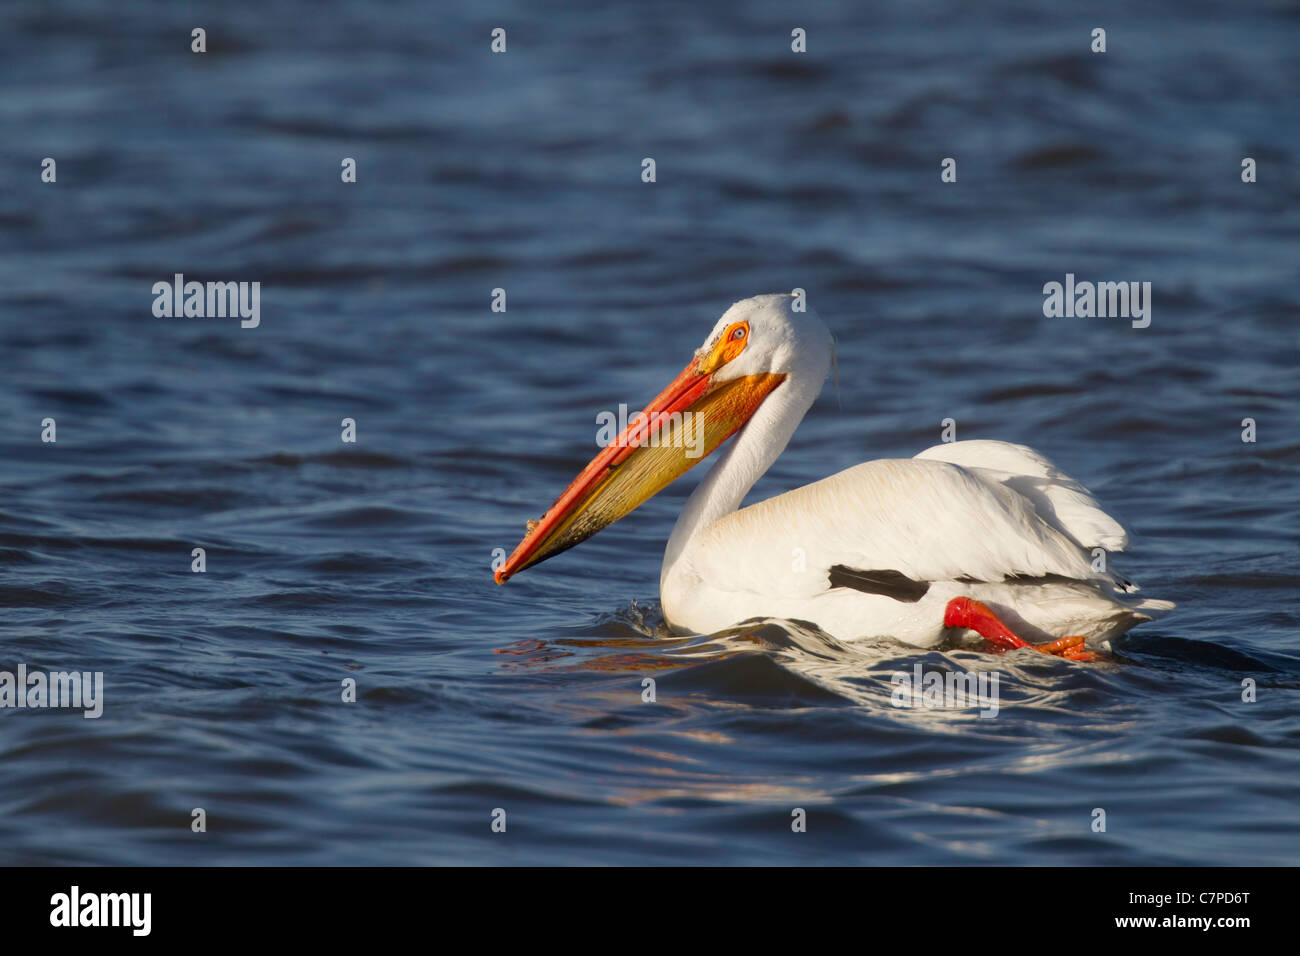 American White Pelican Pelecanus erythrorhynchos Lower Klamath National Wildlife Refuge, California, Unites States - Stock Image